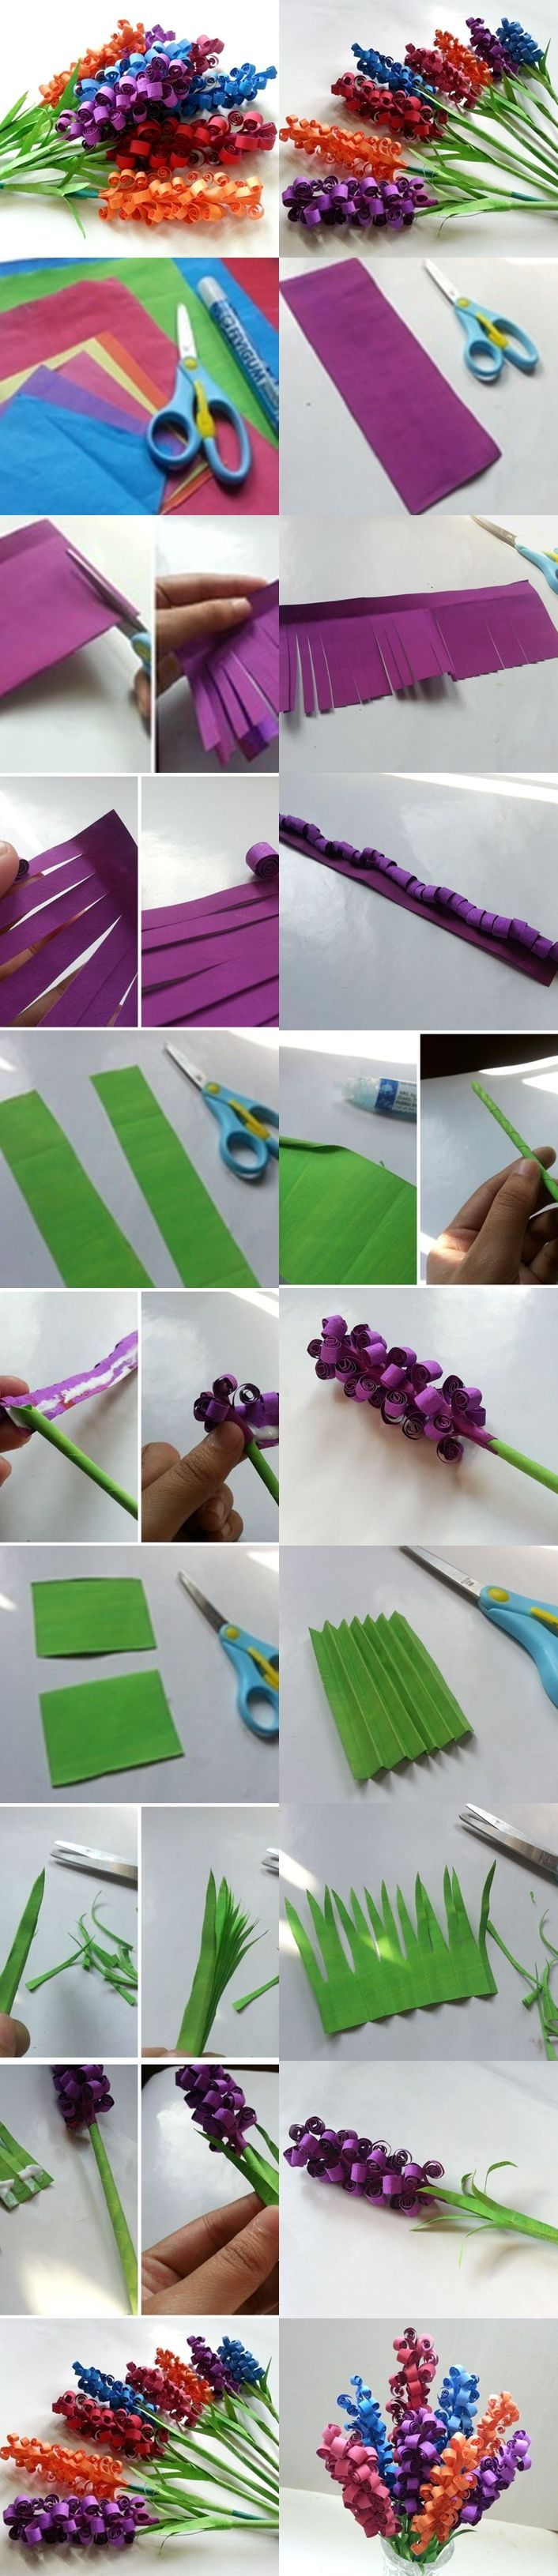 DIY Swirly Paper Flowers look really cute. My first thought was to try rolling the paper before cutting into strips.